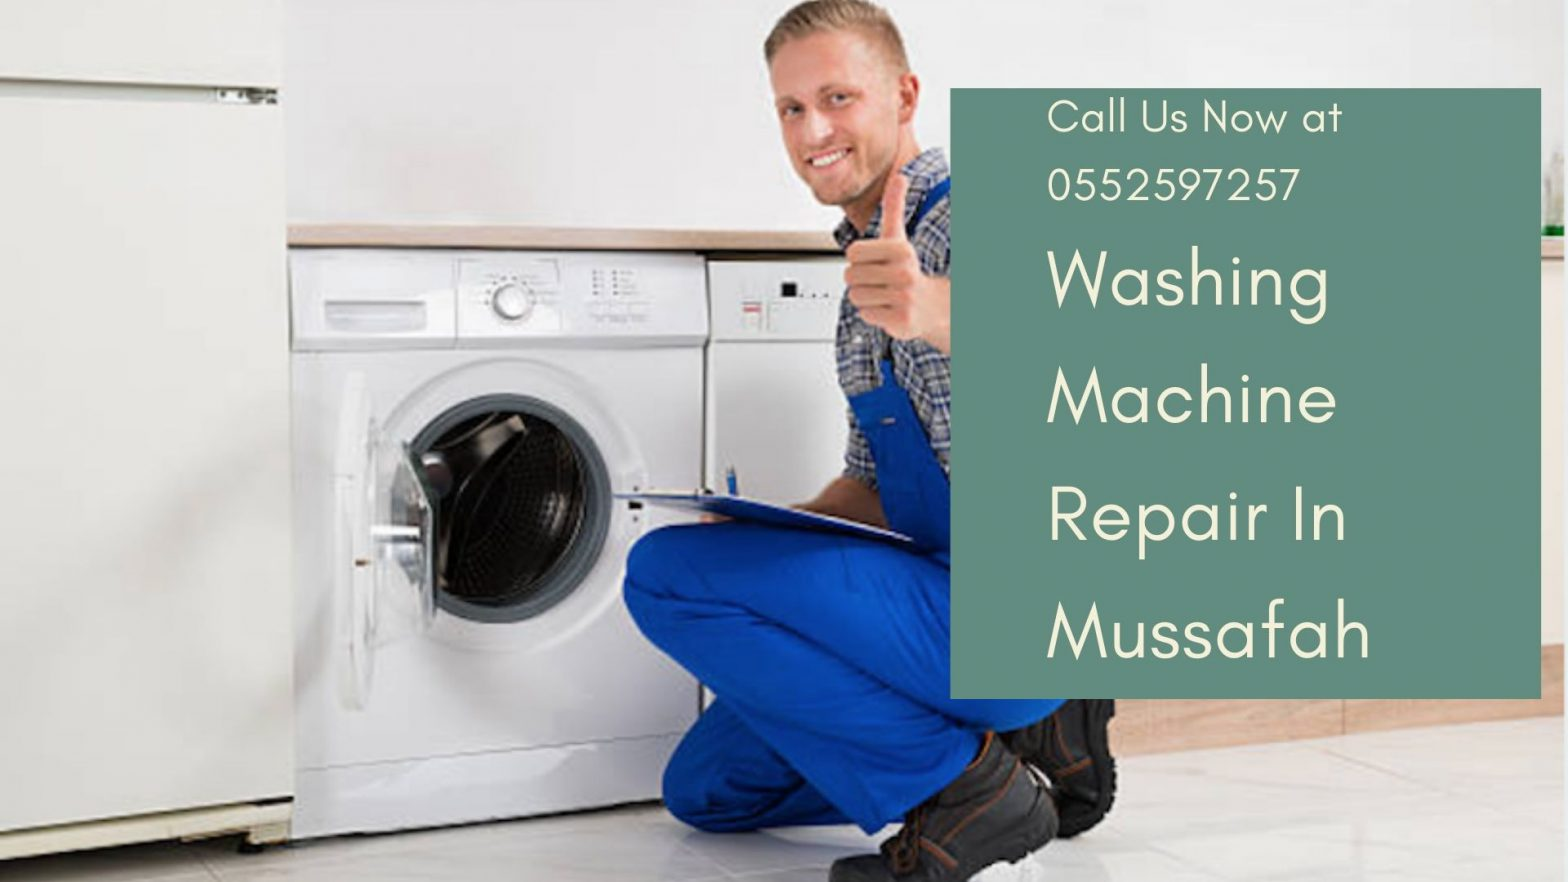 Washing Machine repair in Mussafah